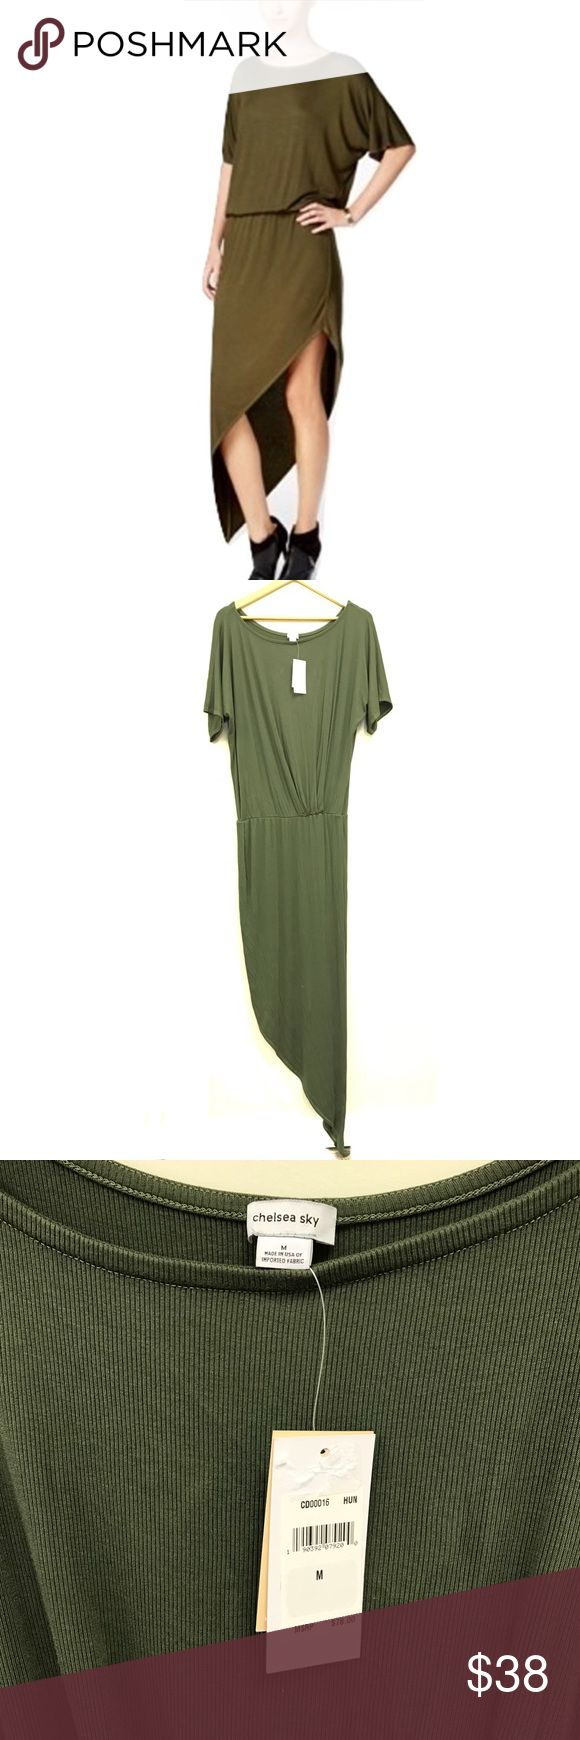 Chelsea Sky Green Asymmetrical Dress Chelsea Sky hunter green asymmetrical dress. Super cute! Size Medium and fits true to size. Brand new with tags! Chelsea Sky Dresses Asymmetrical